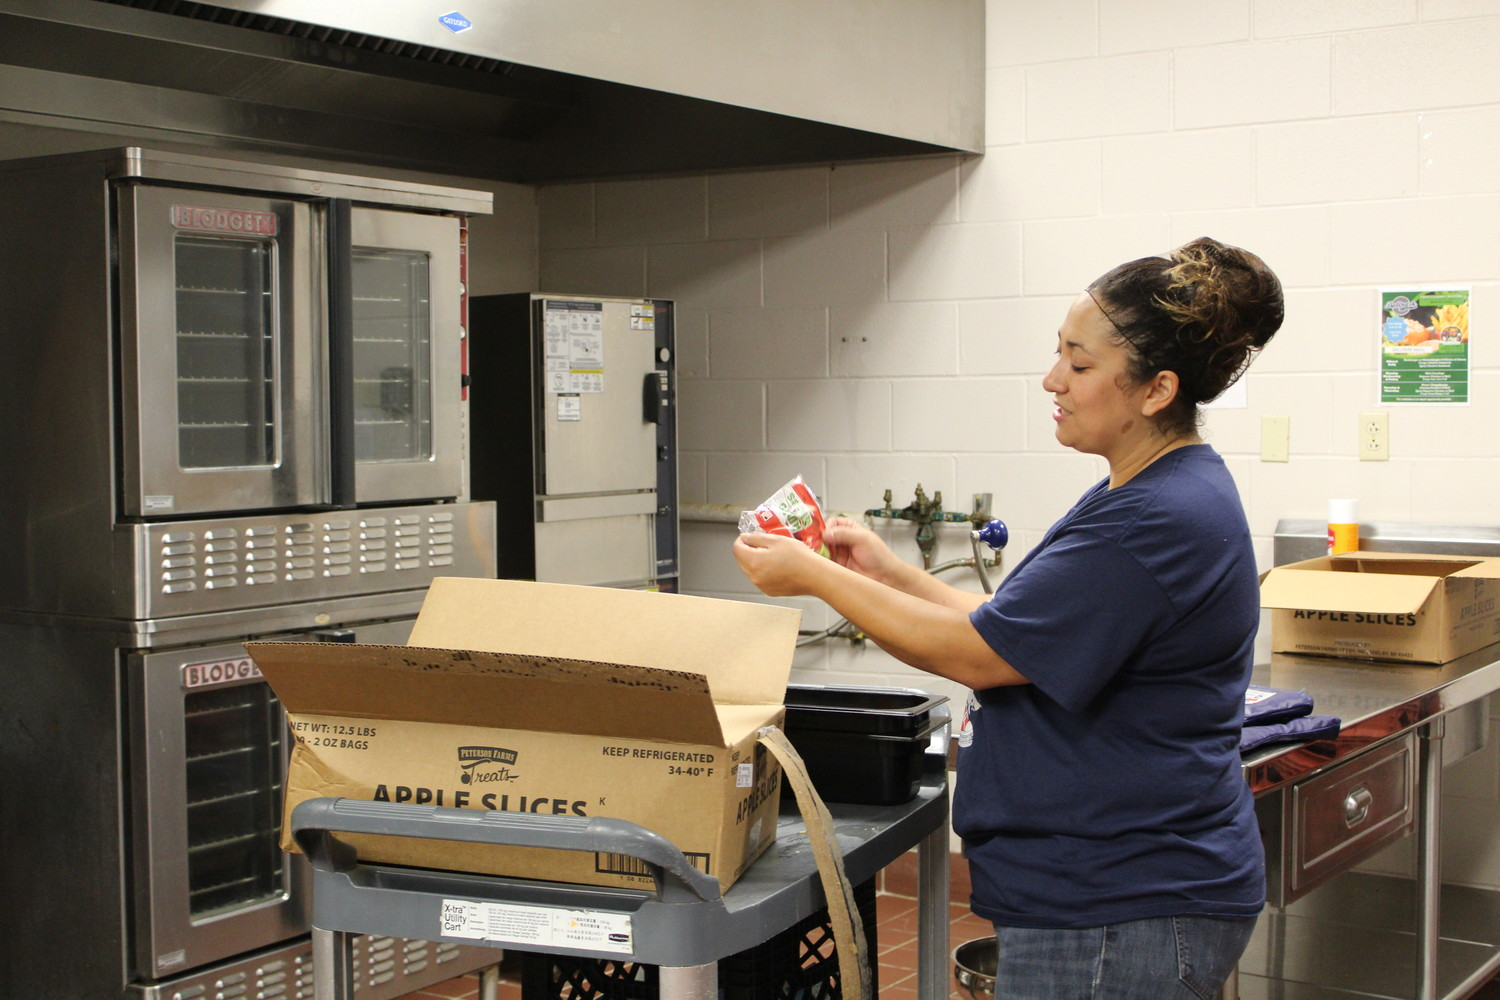 Naomi Flores, a server and cook, examines bags of fresh apple slices available for the free lunch program at Running Brushy Middle School on June 20.